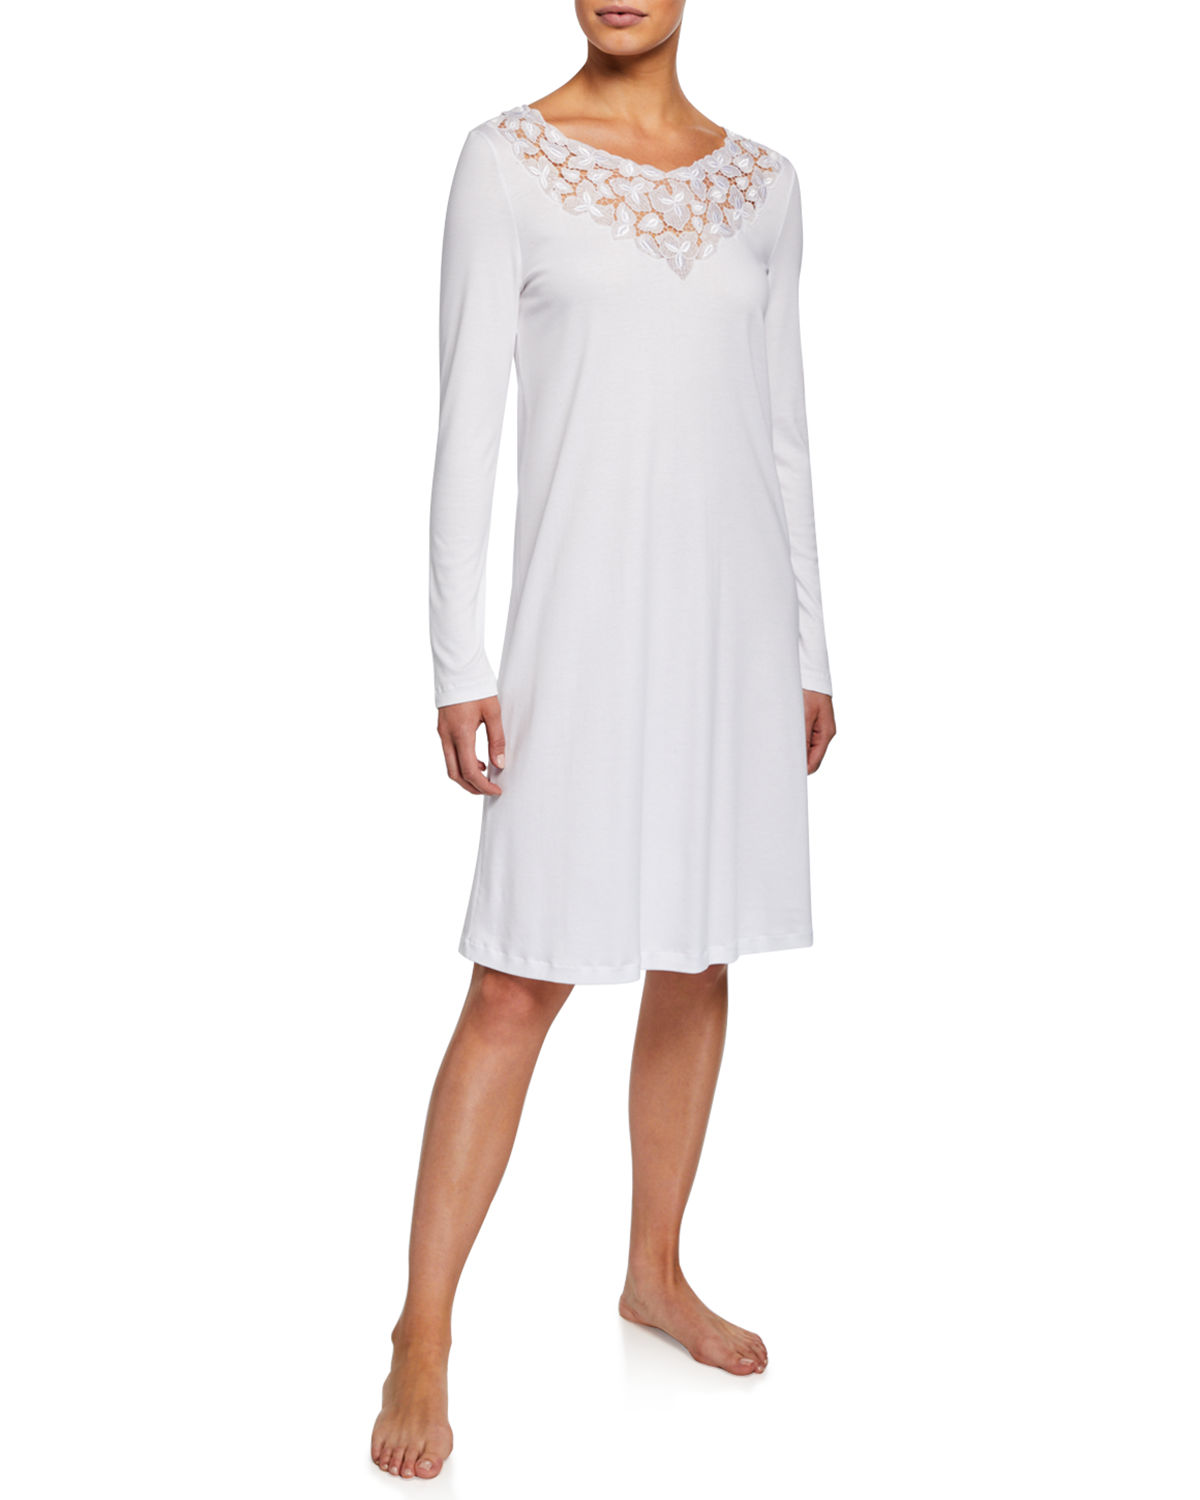 Hanro Tops AURELIA LONG-SLEEVE NIGHTGOWN WITH 3D FLORAL LACE DETAIL